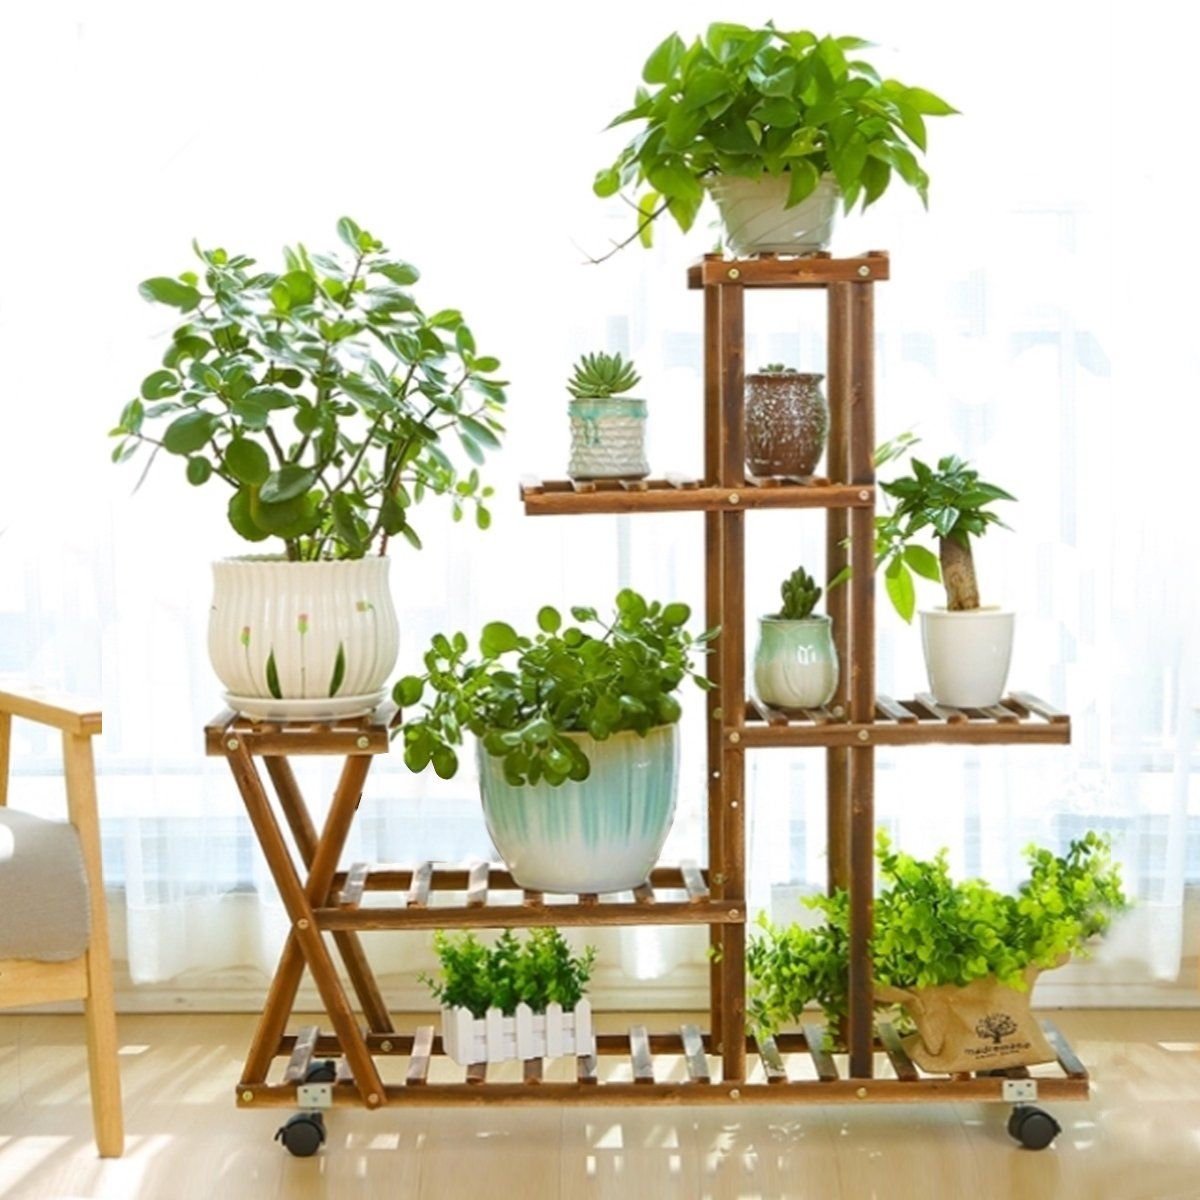 4 Layer Wooden Plant Flower Pot Stand Shelf Indoor Outdoor Garden Planter Fir Wood With Wheels Without Guardrail 37 Inch Walmart Com In 2020 Large Plant Pots Plant Stand Indoor Plant Stand